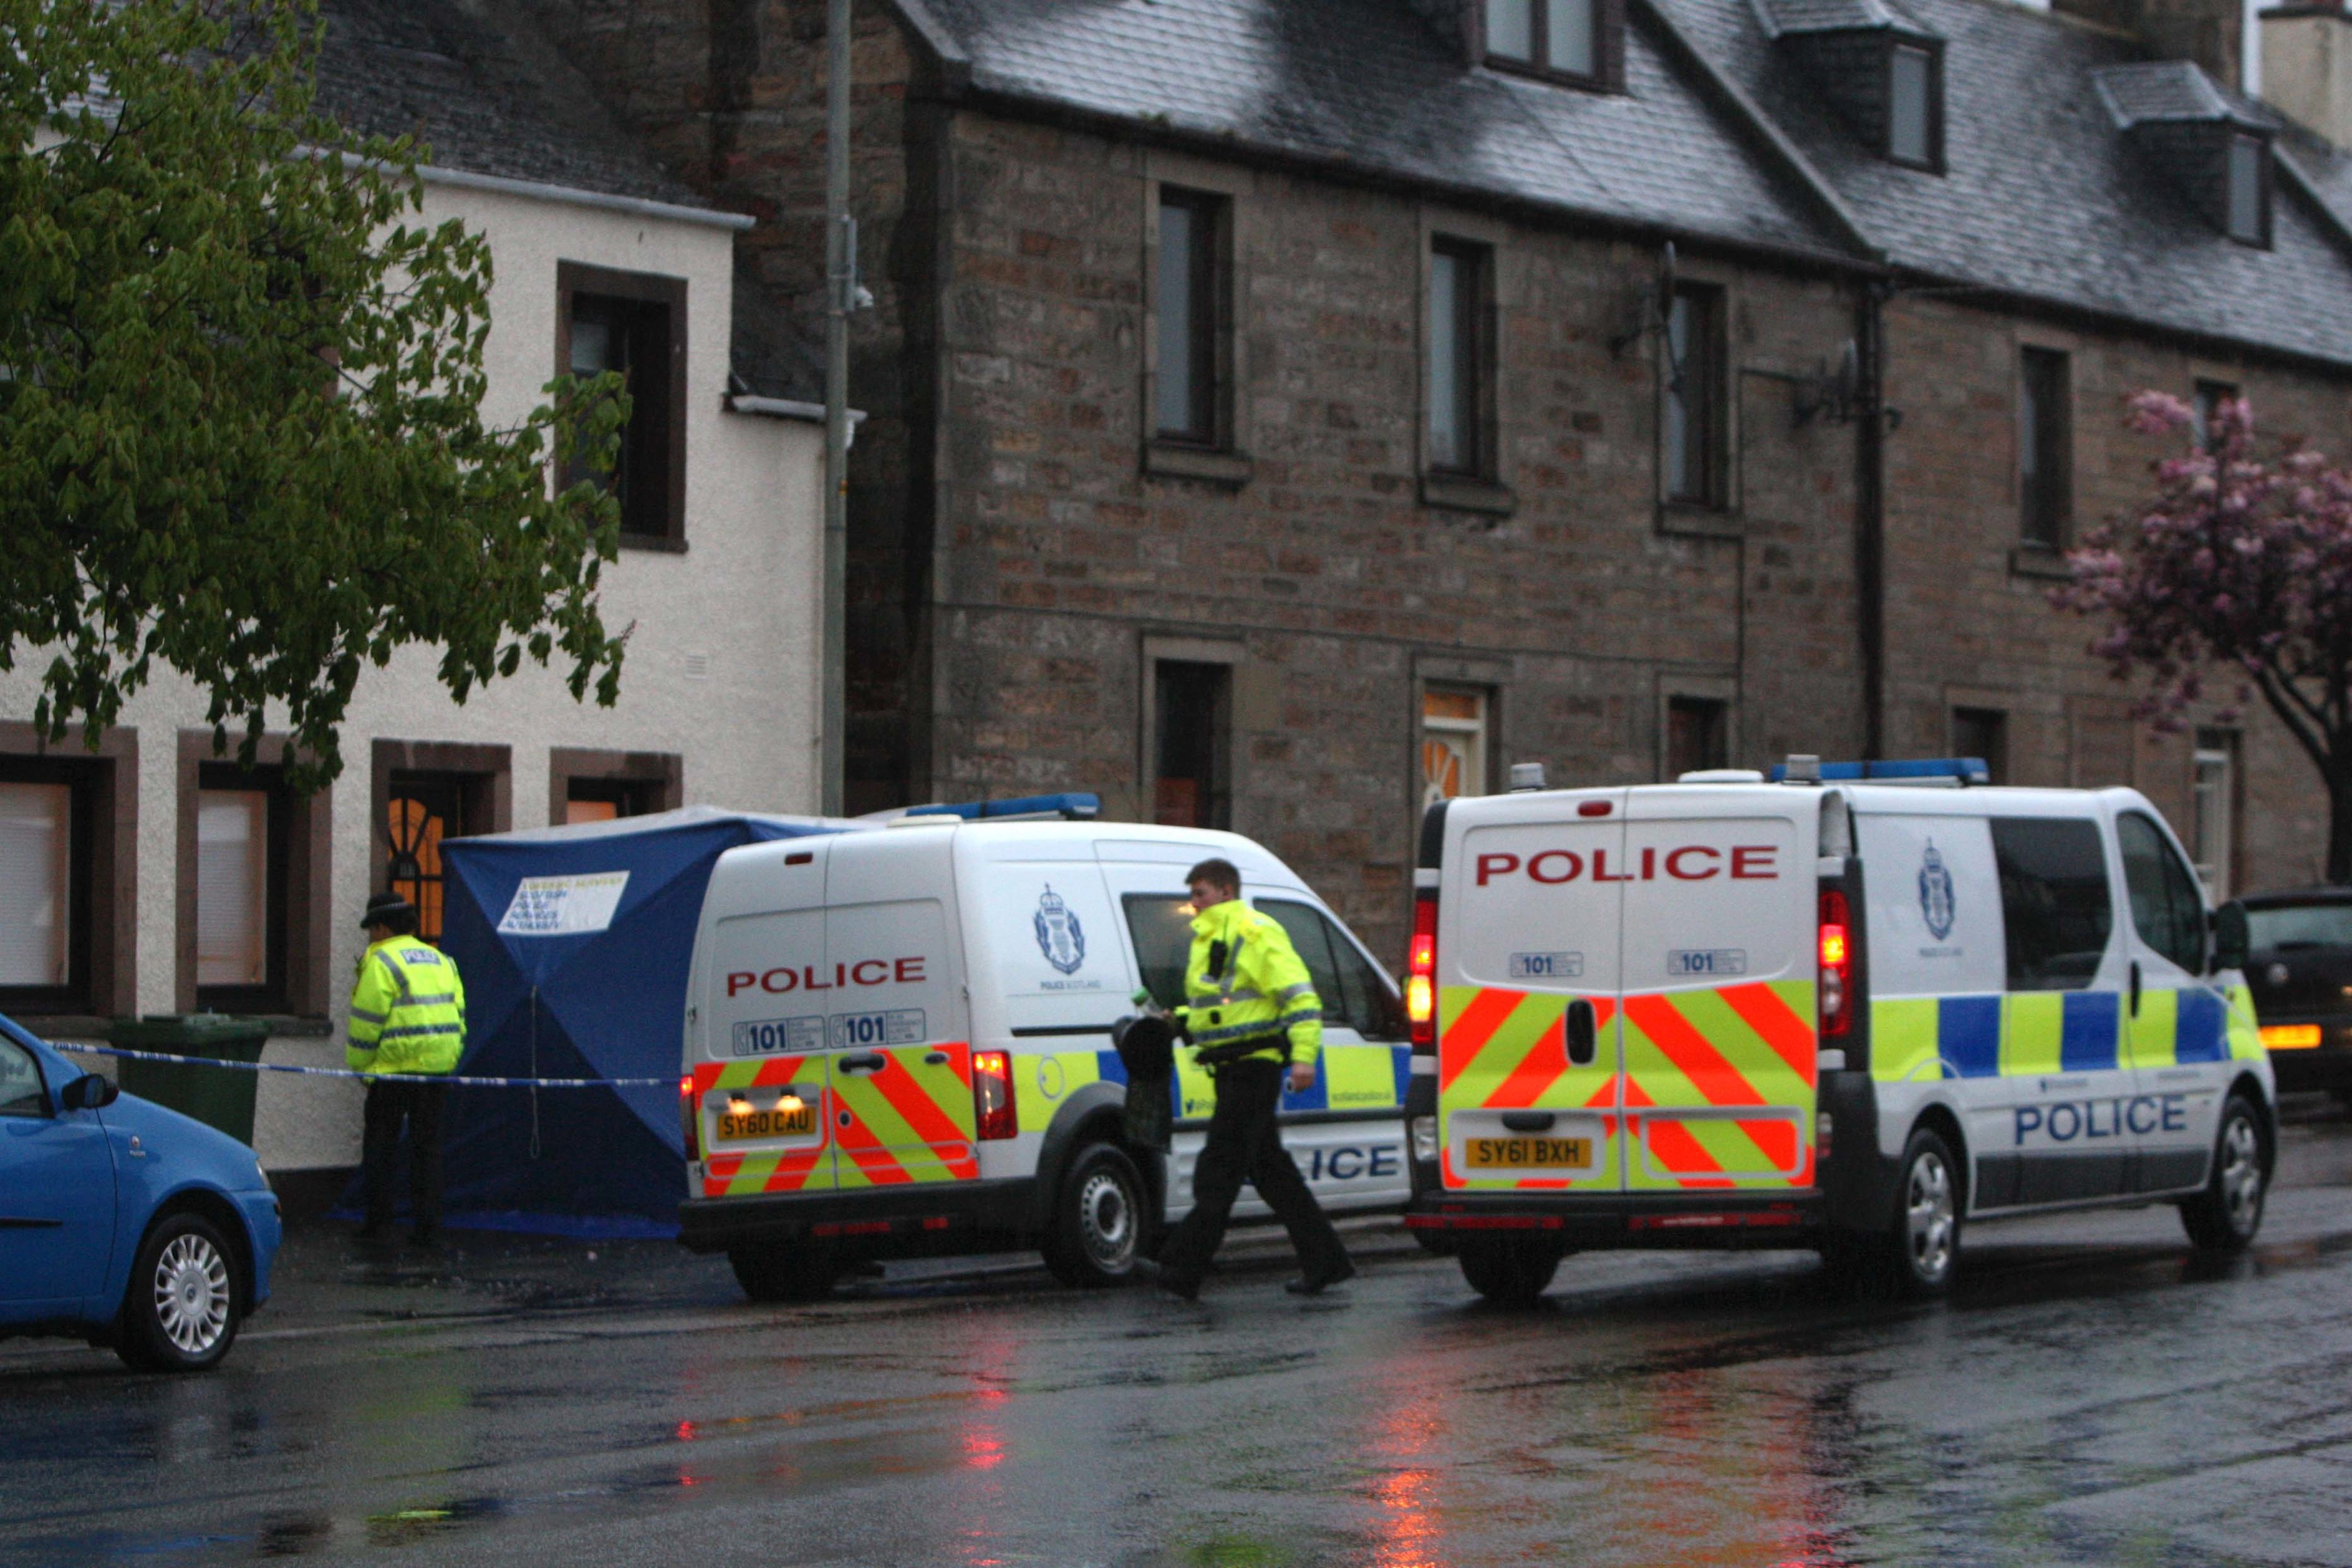 Scene of a stabbing outside number 157 on the high street in Invergordon. Picture: Andrew Smith